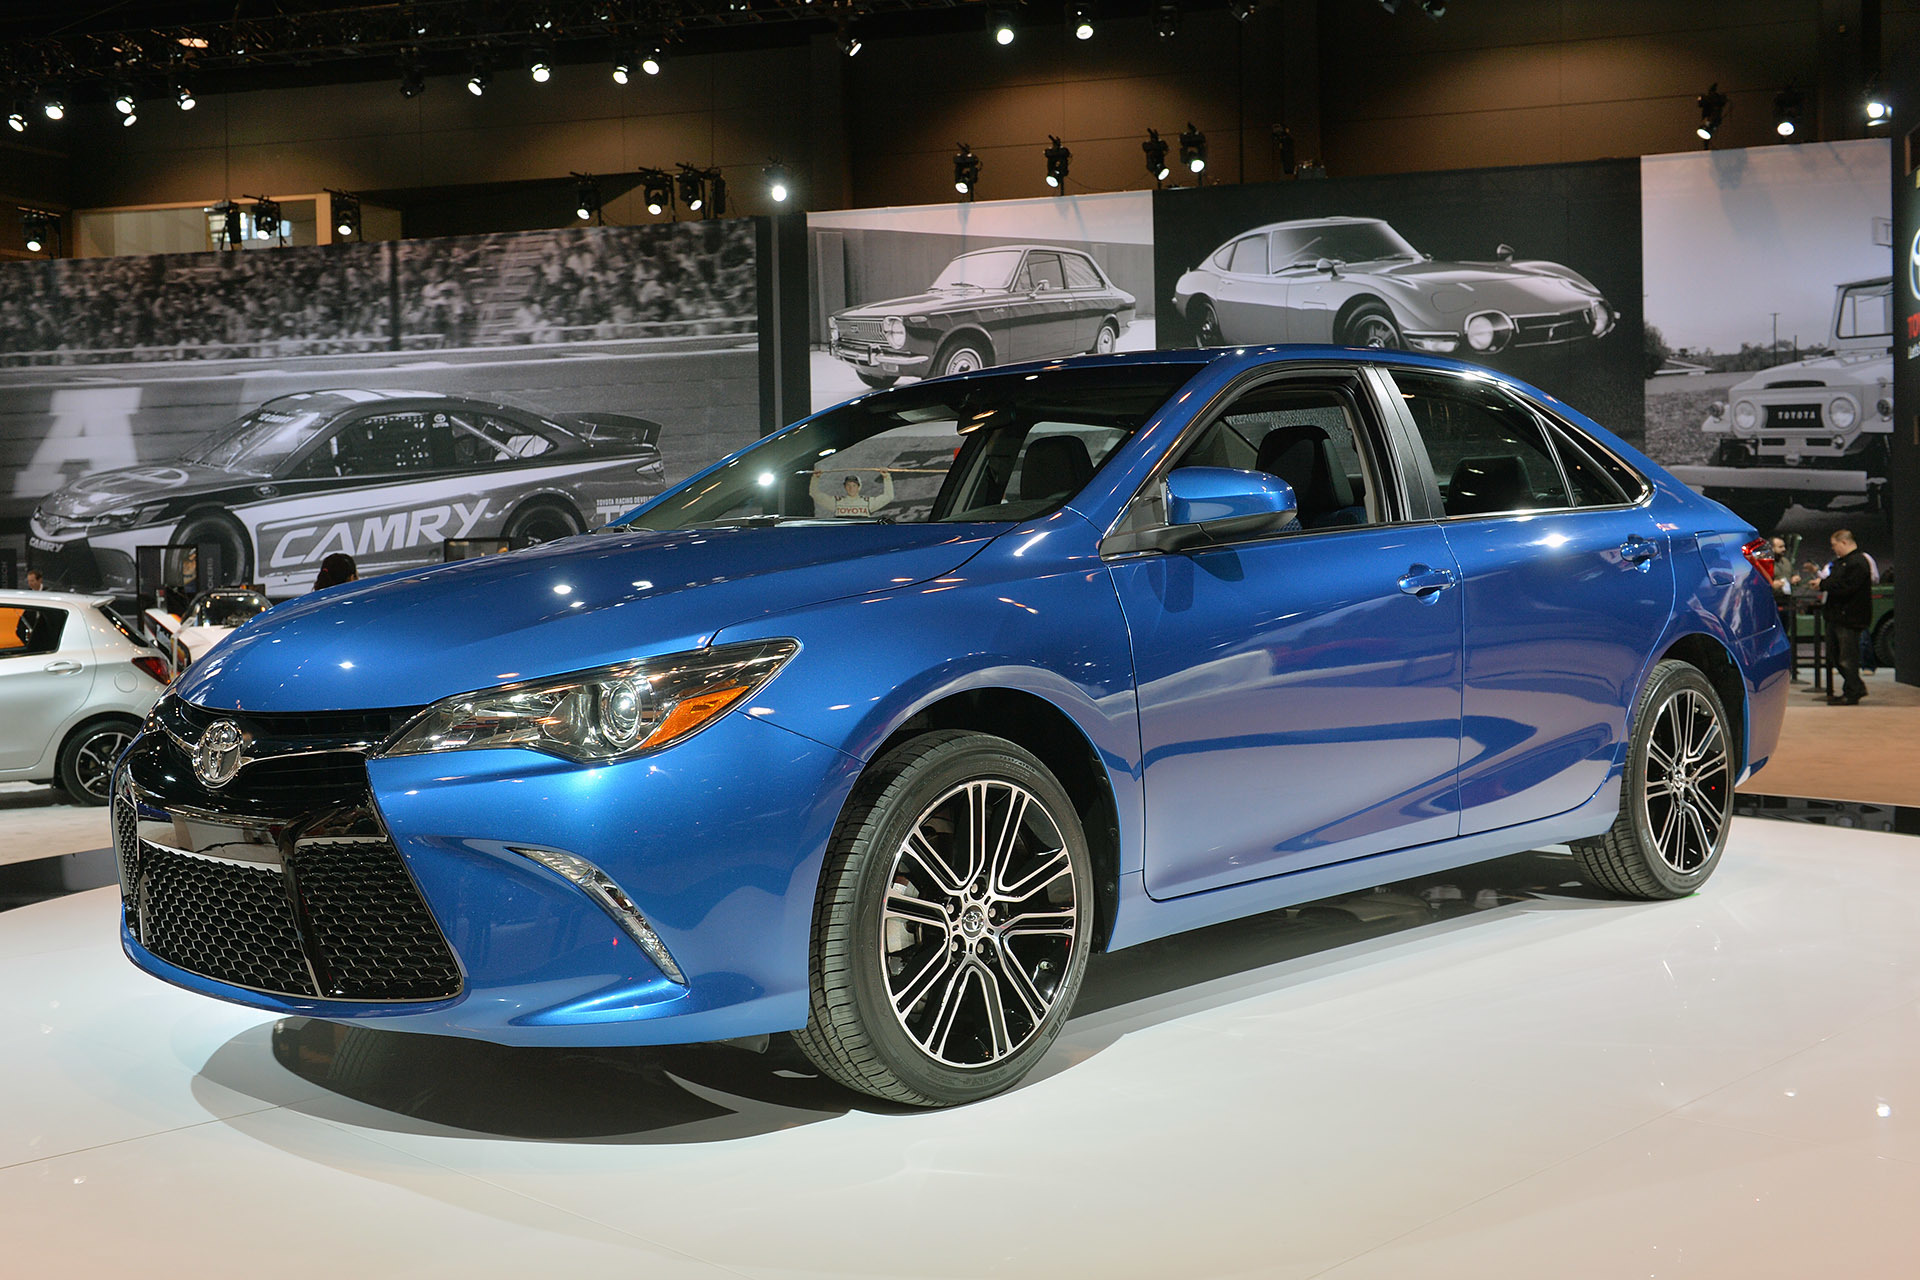 2016 toyota camry special edition chicago 2015 photo gallery autoblog. Black Bedroom Furniture Sets. Home Design Ideas